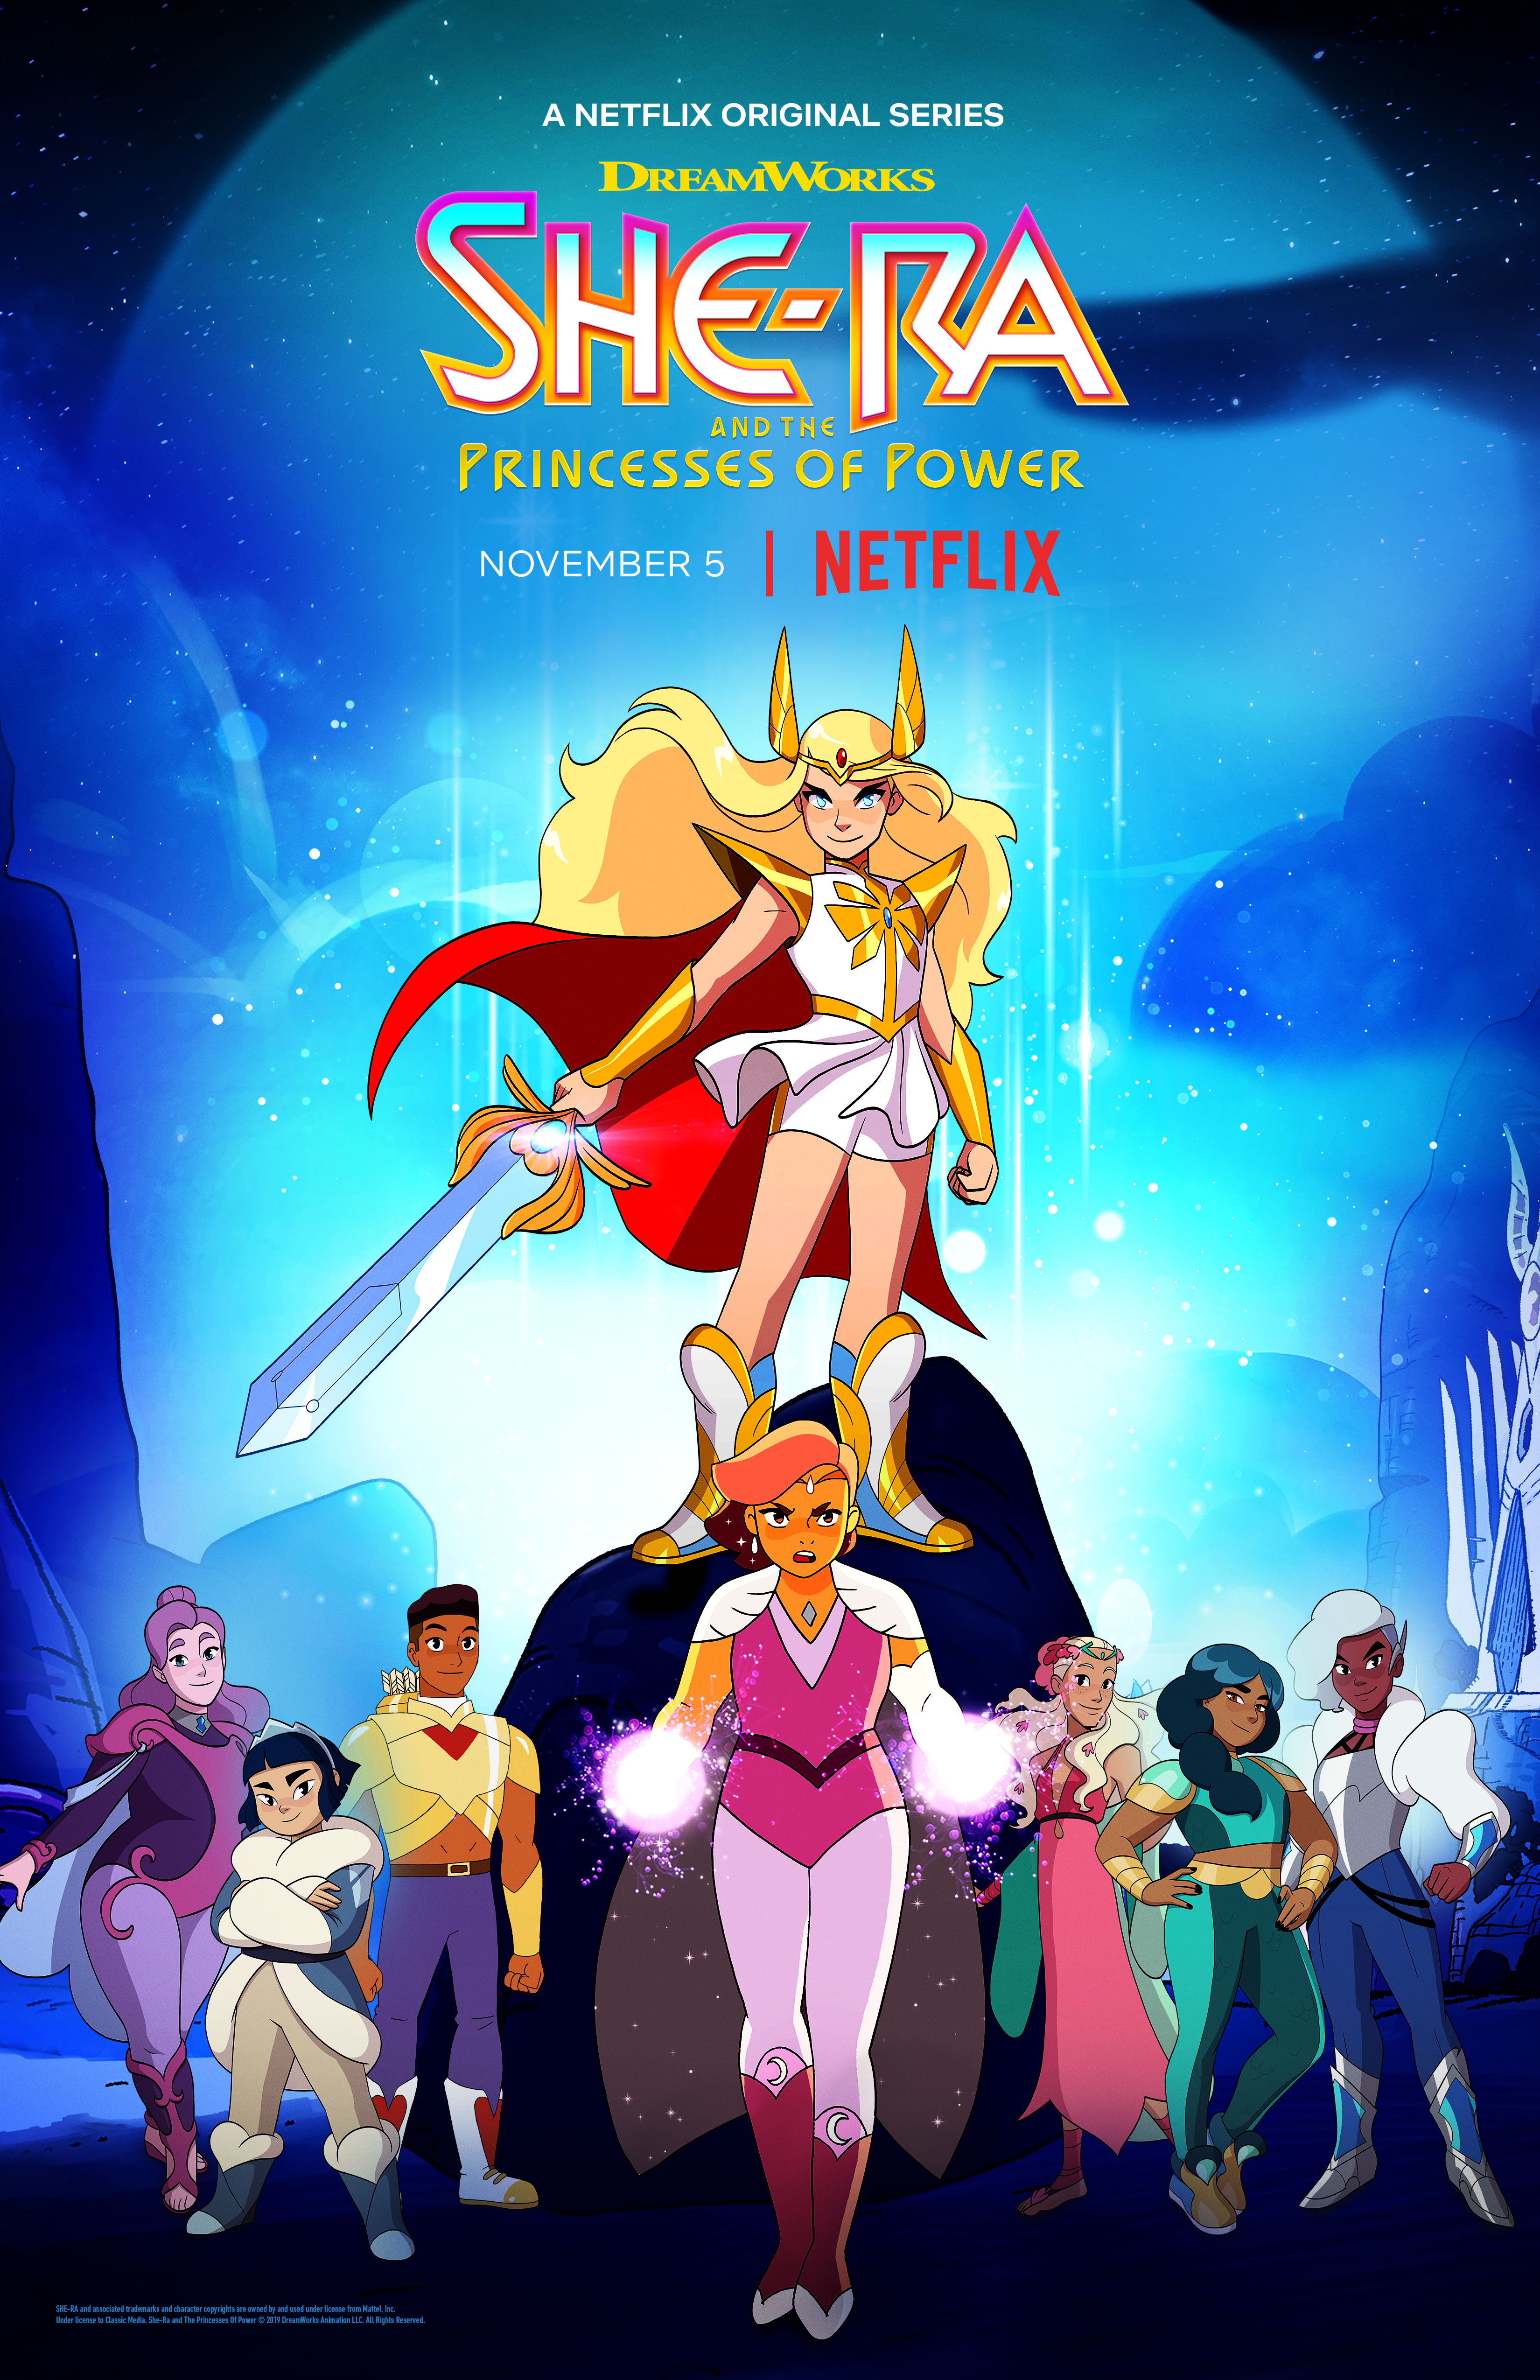 She Ra and the Princesses of Power S01 S02 S03 S04  [مدبلج] [1080]